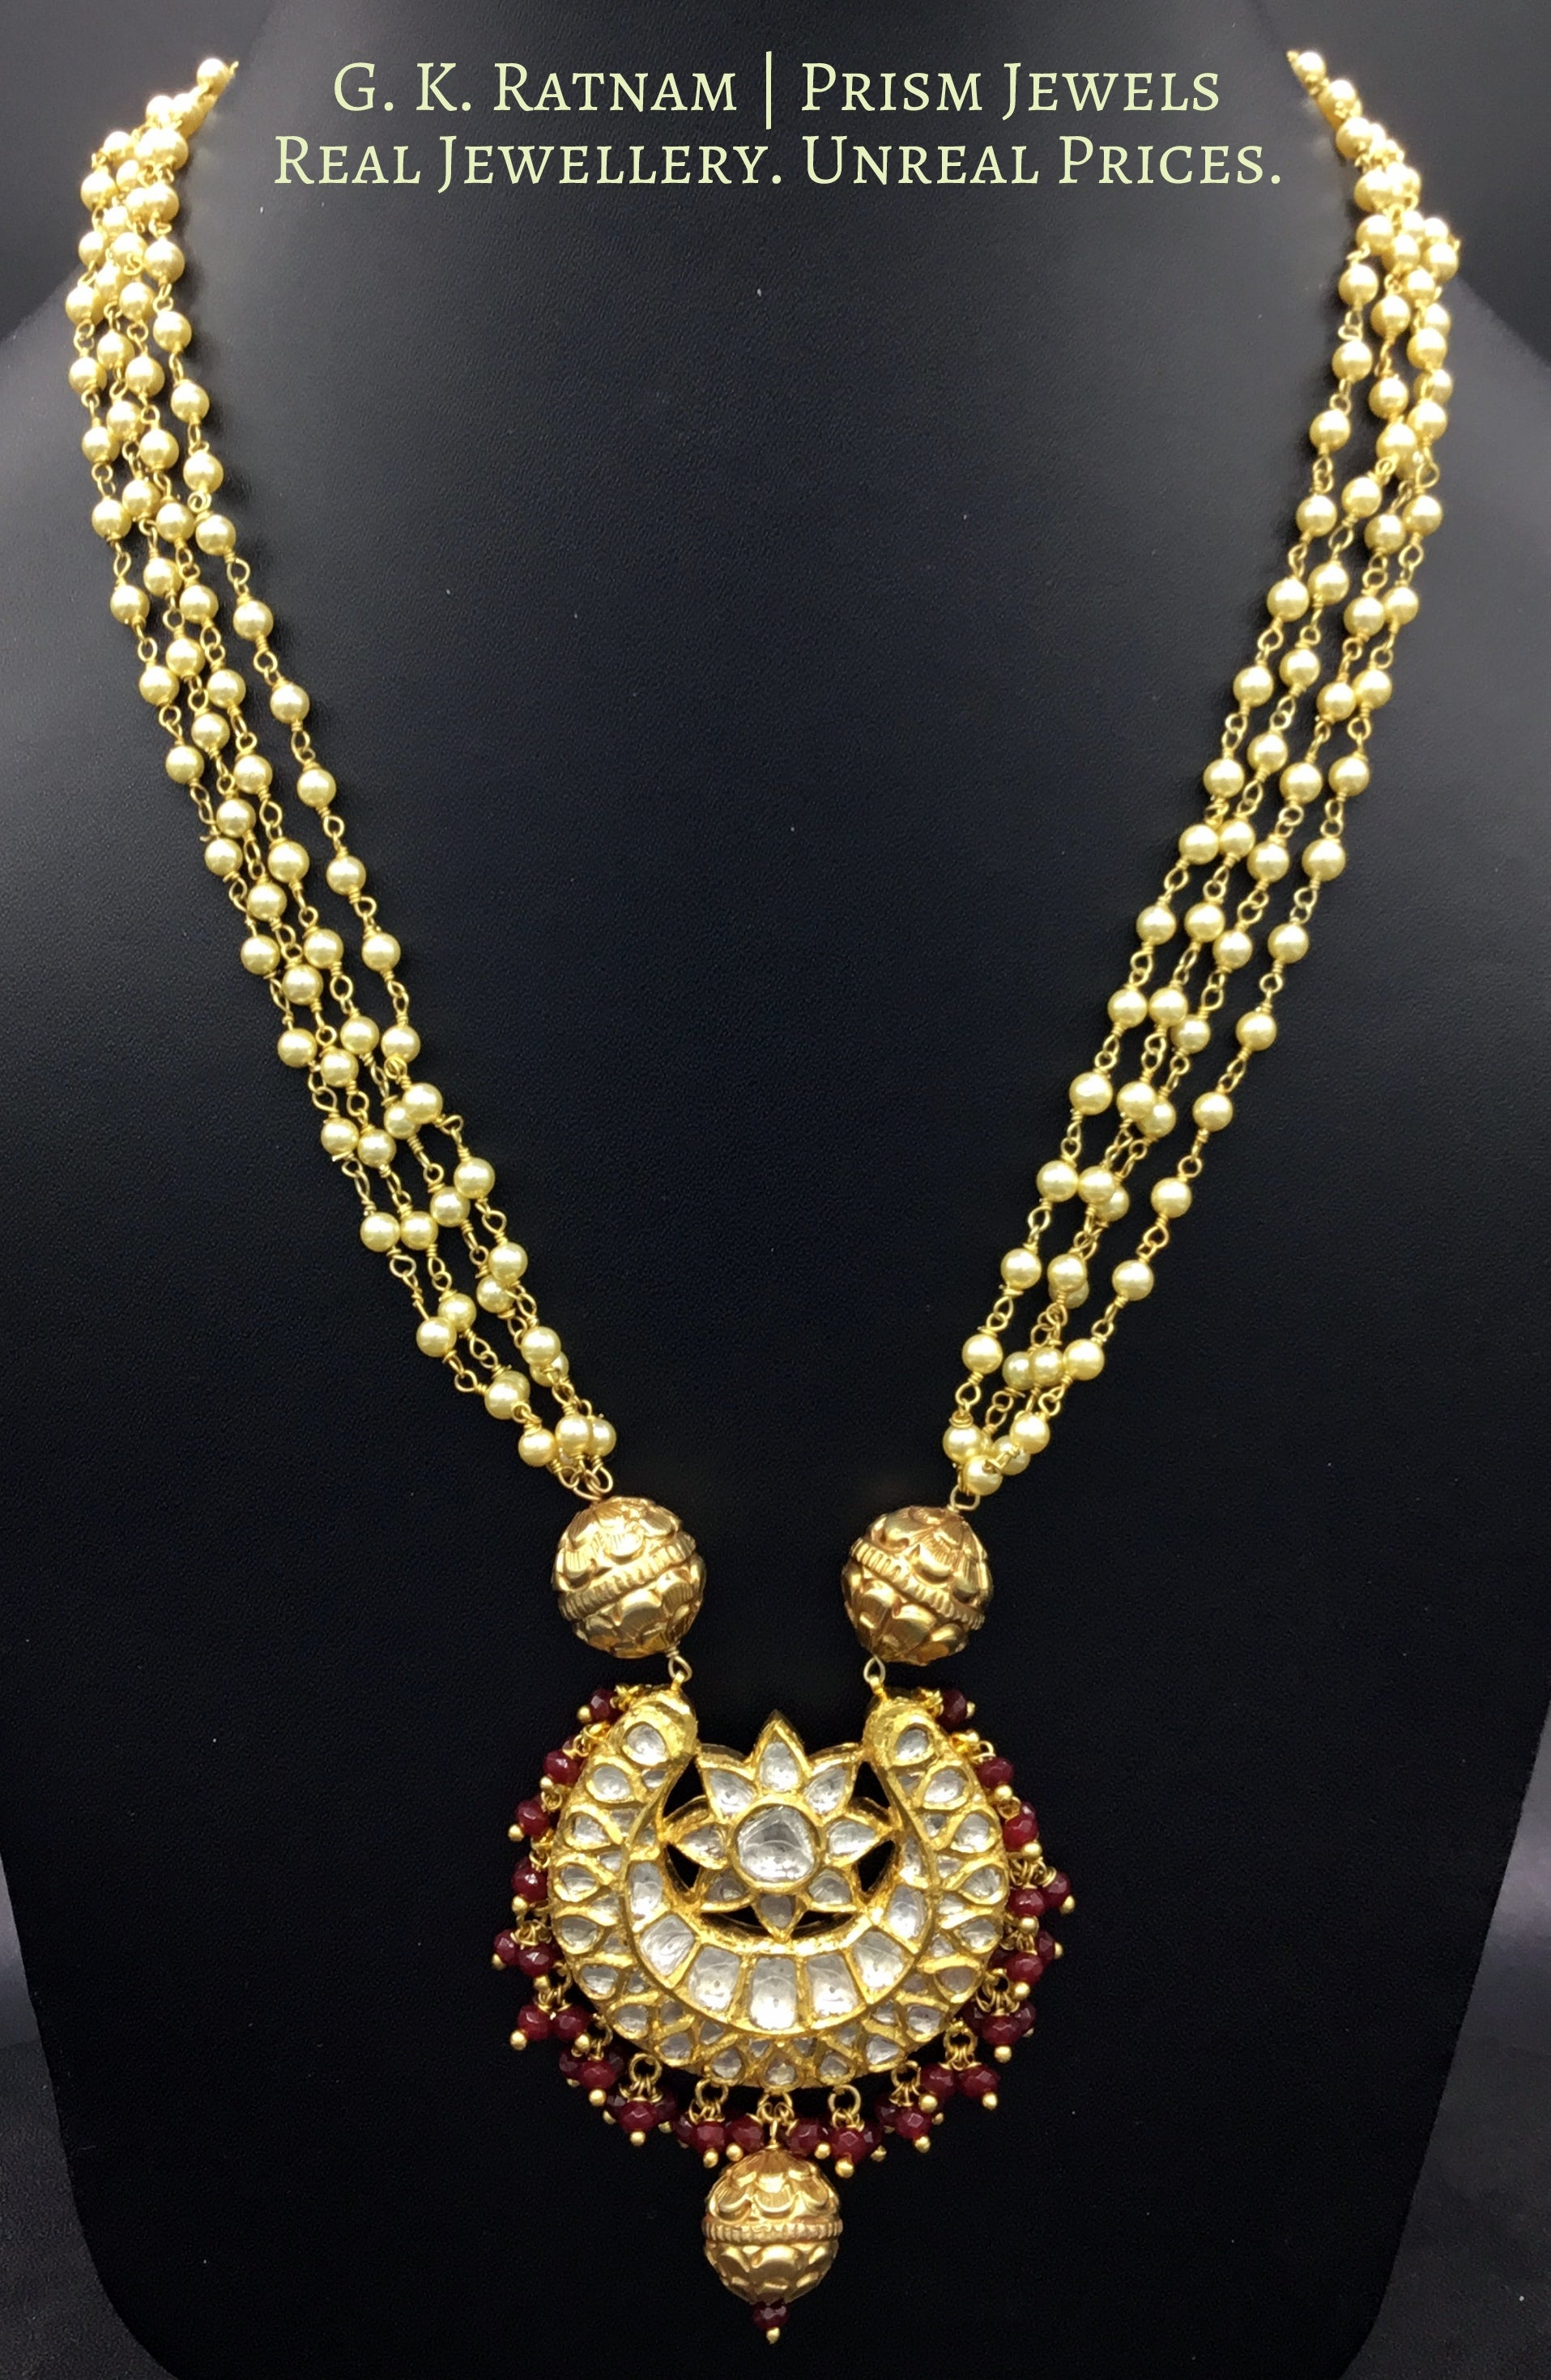 18k Gold and Diamond Polki Chand Pendant with Pearl Chains and Ruby Beads - G. K. Ratnam